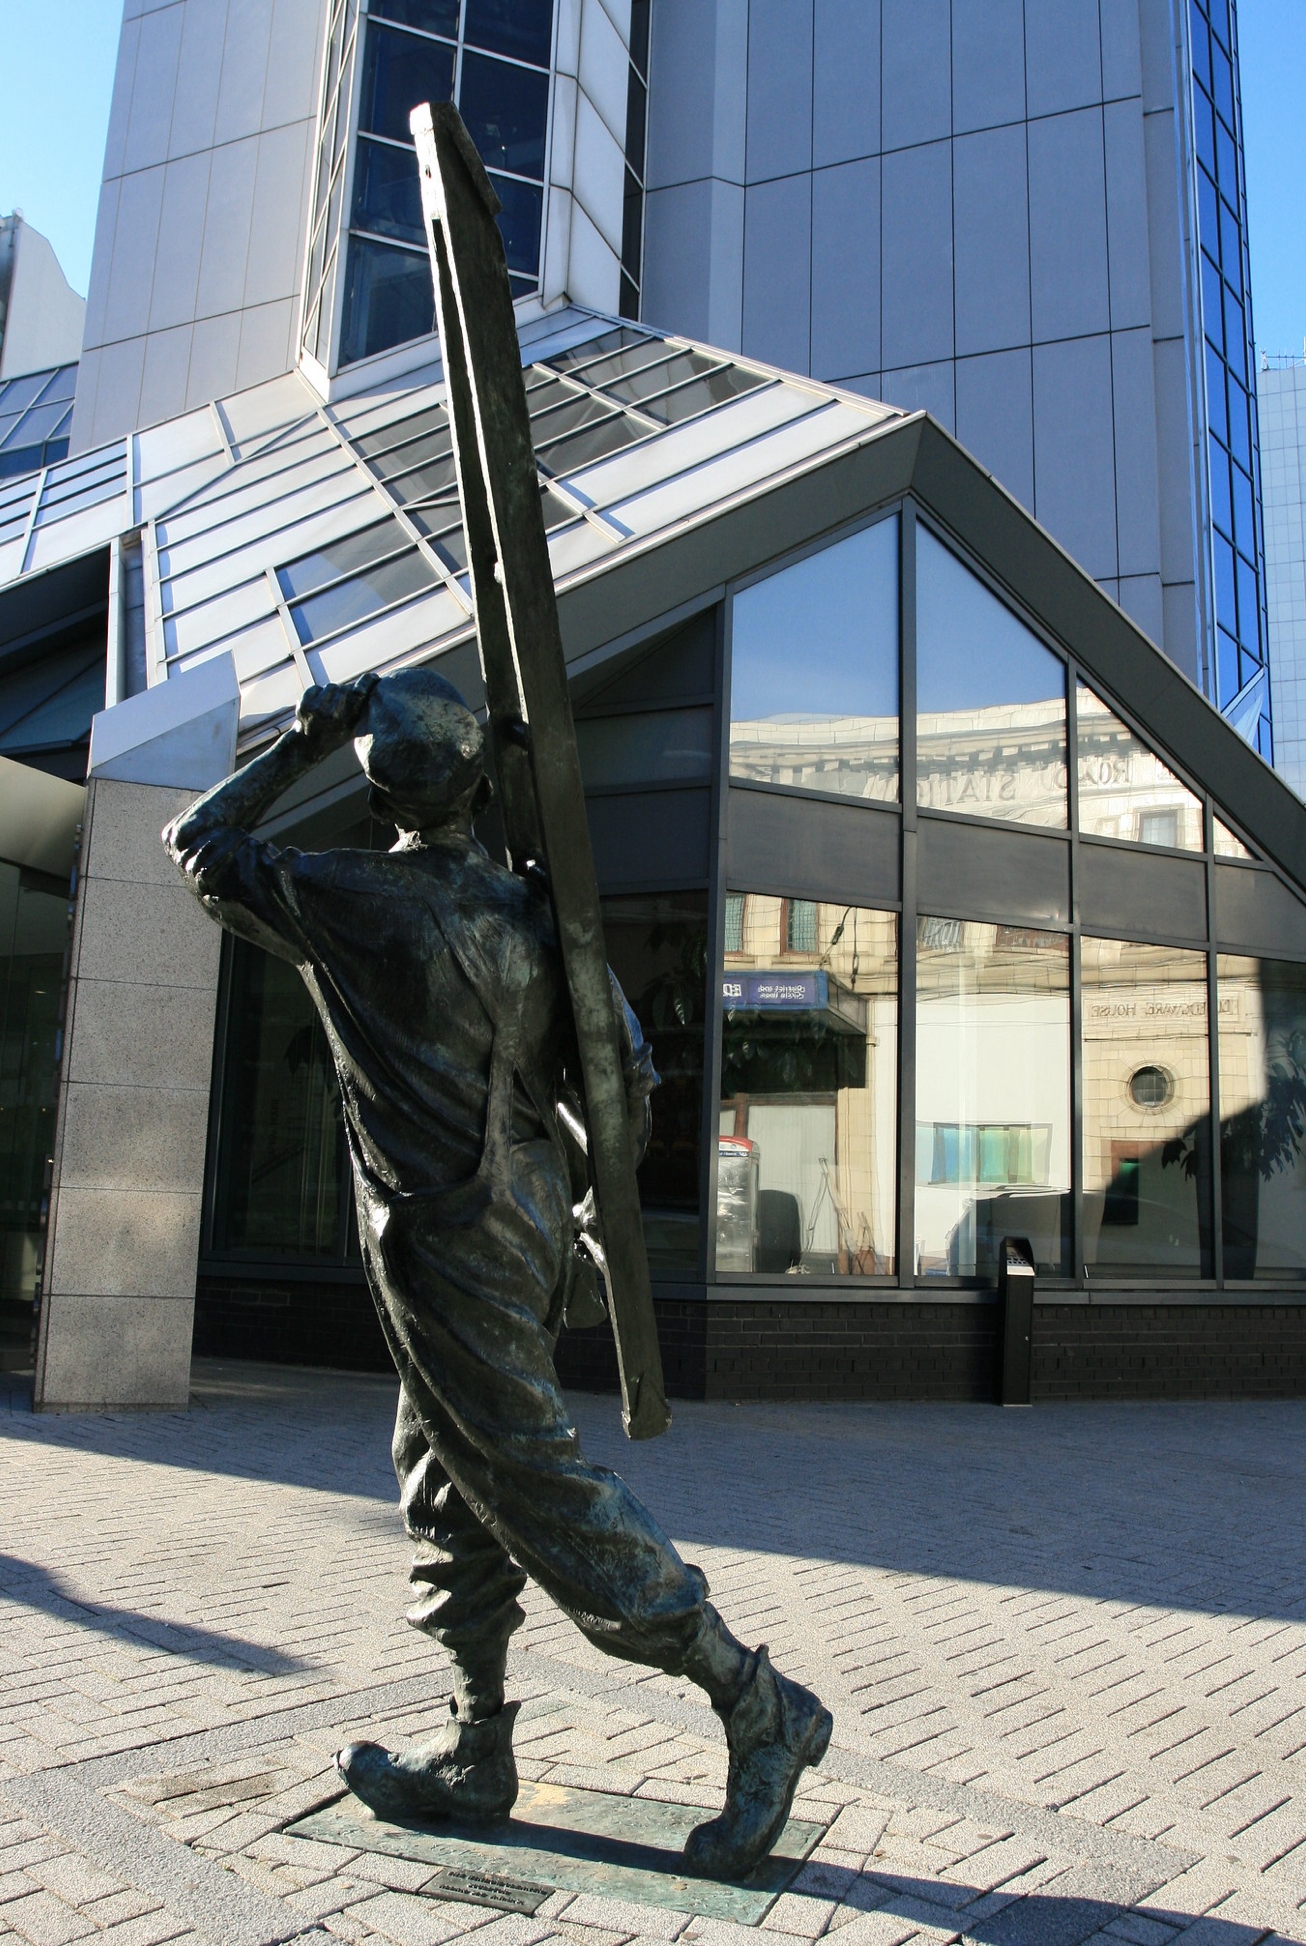 The Window Cleaner Statue (image copyright Mick Baker, via Flickr)